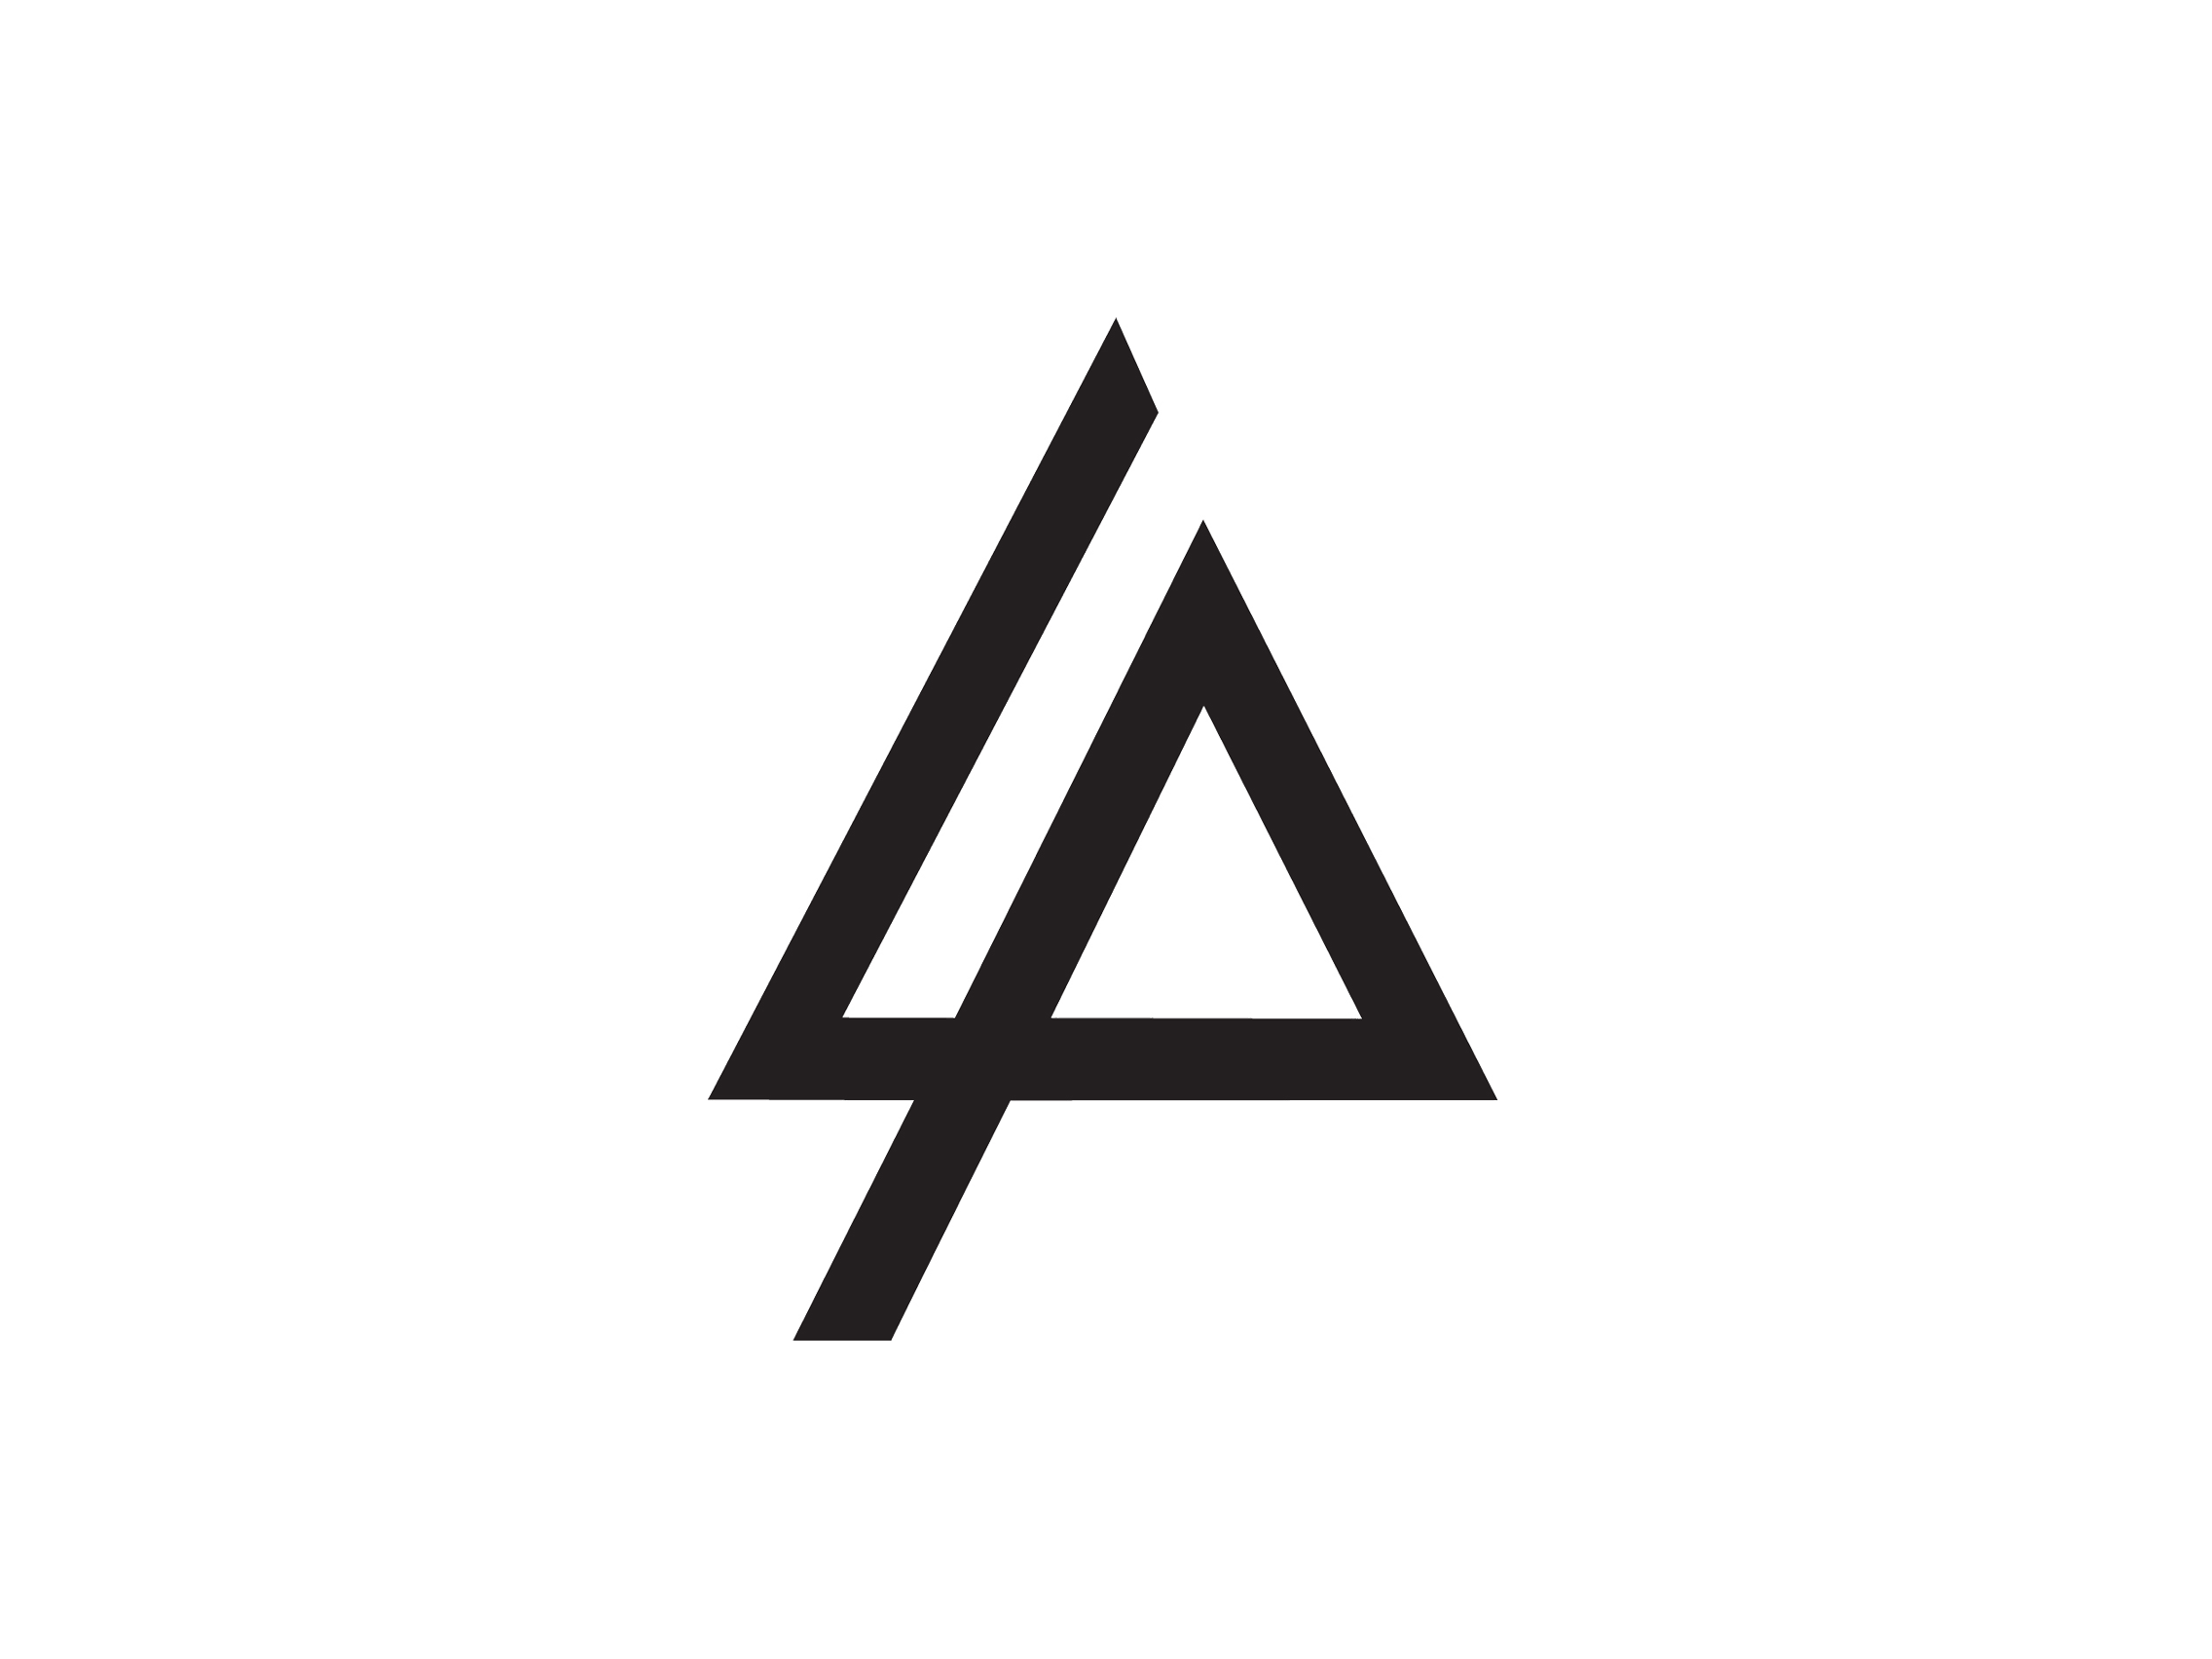 linkin park logo logok. Black Bedroom Furniture Sets. Home Design Ideas